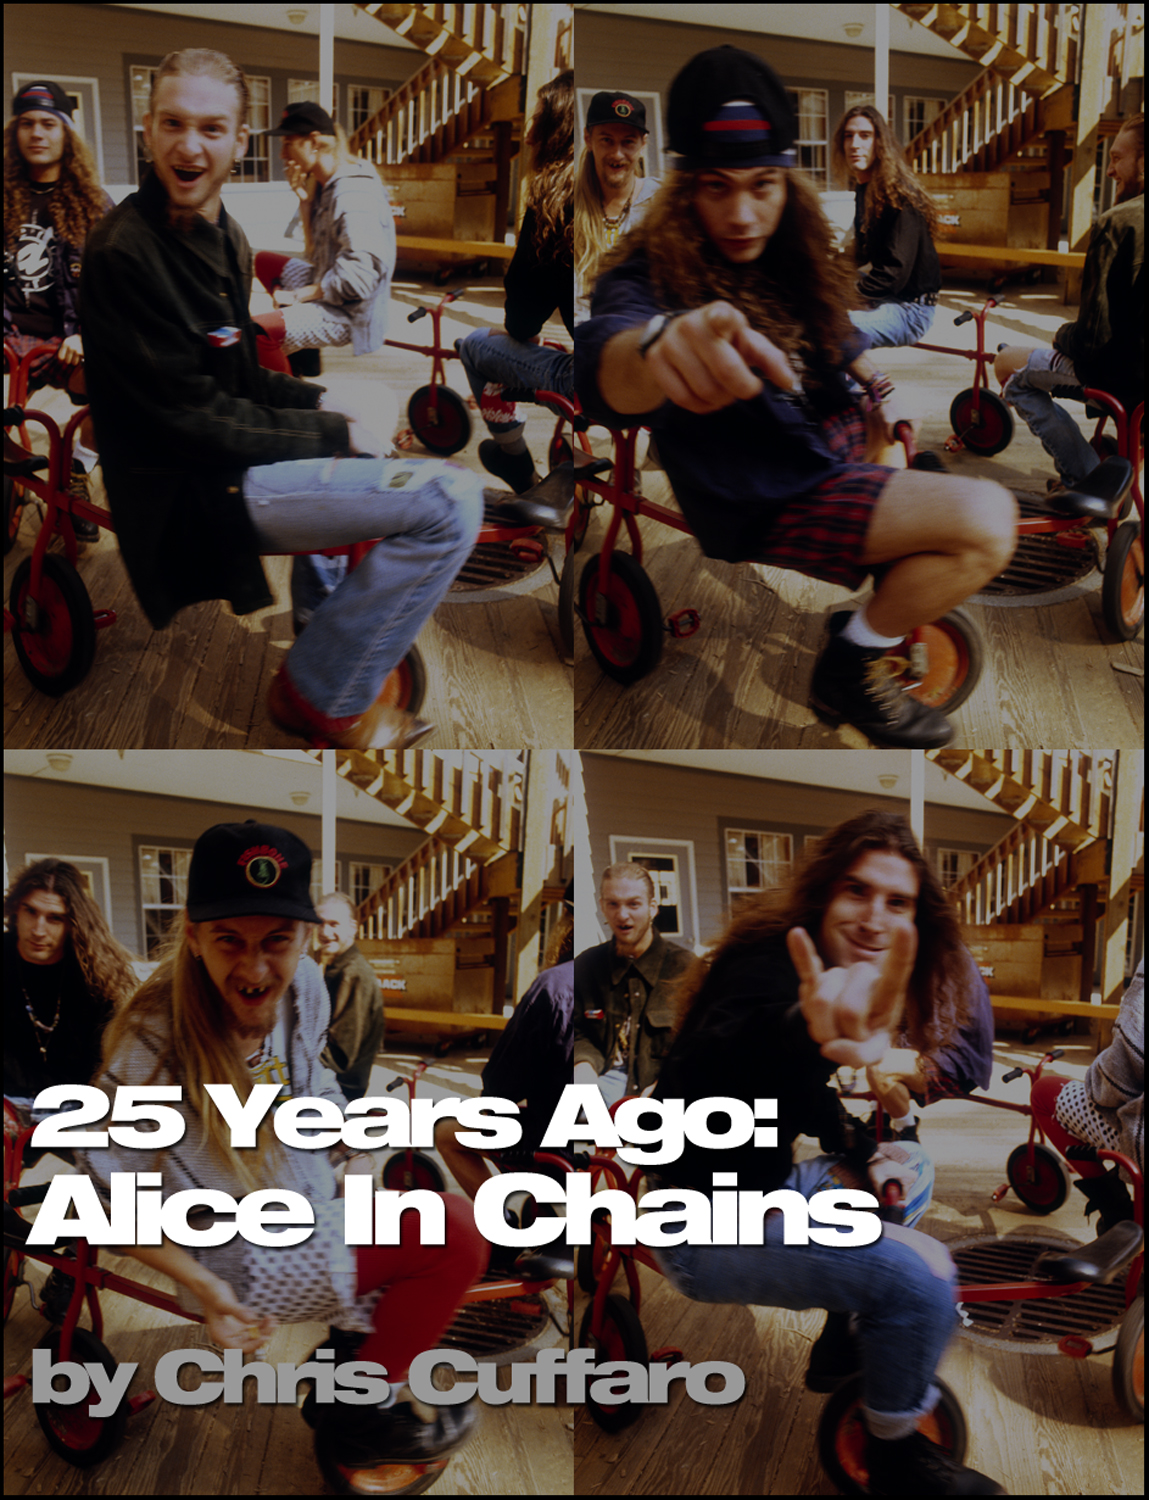 25 Years Ago: Alice In Chains